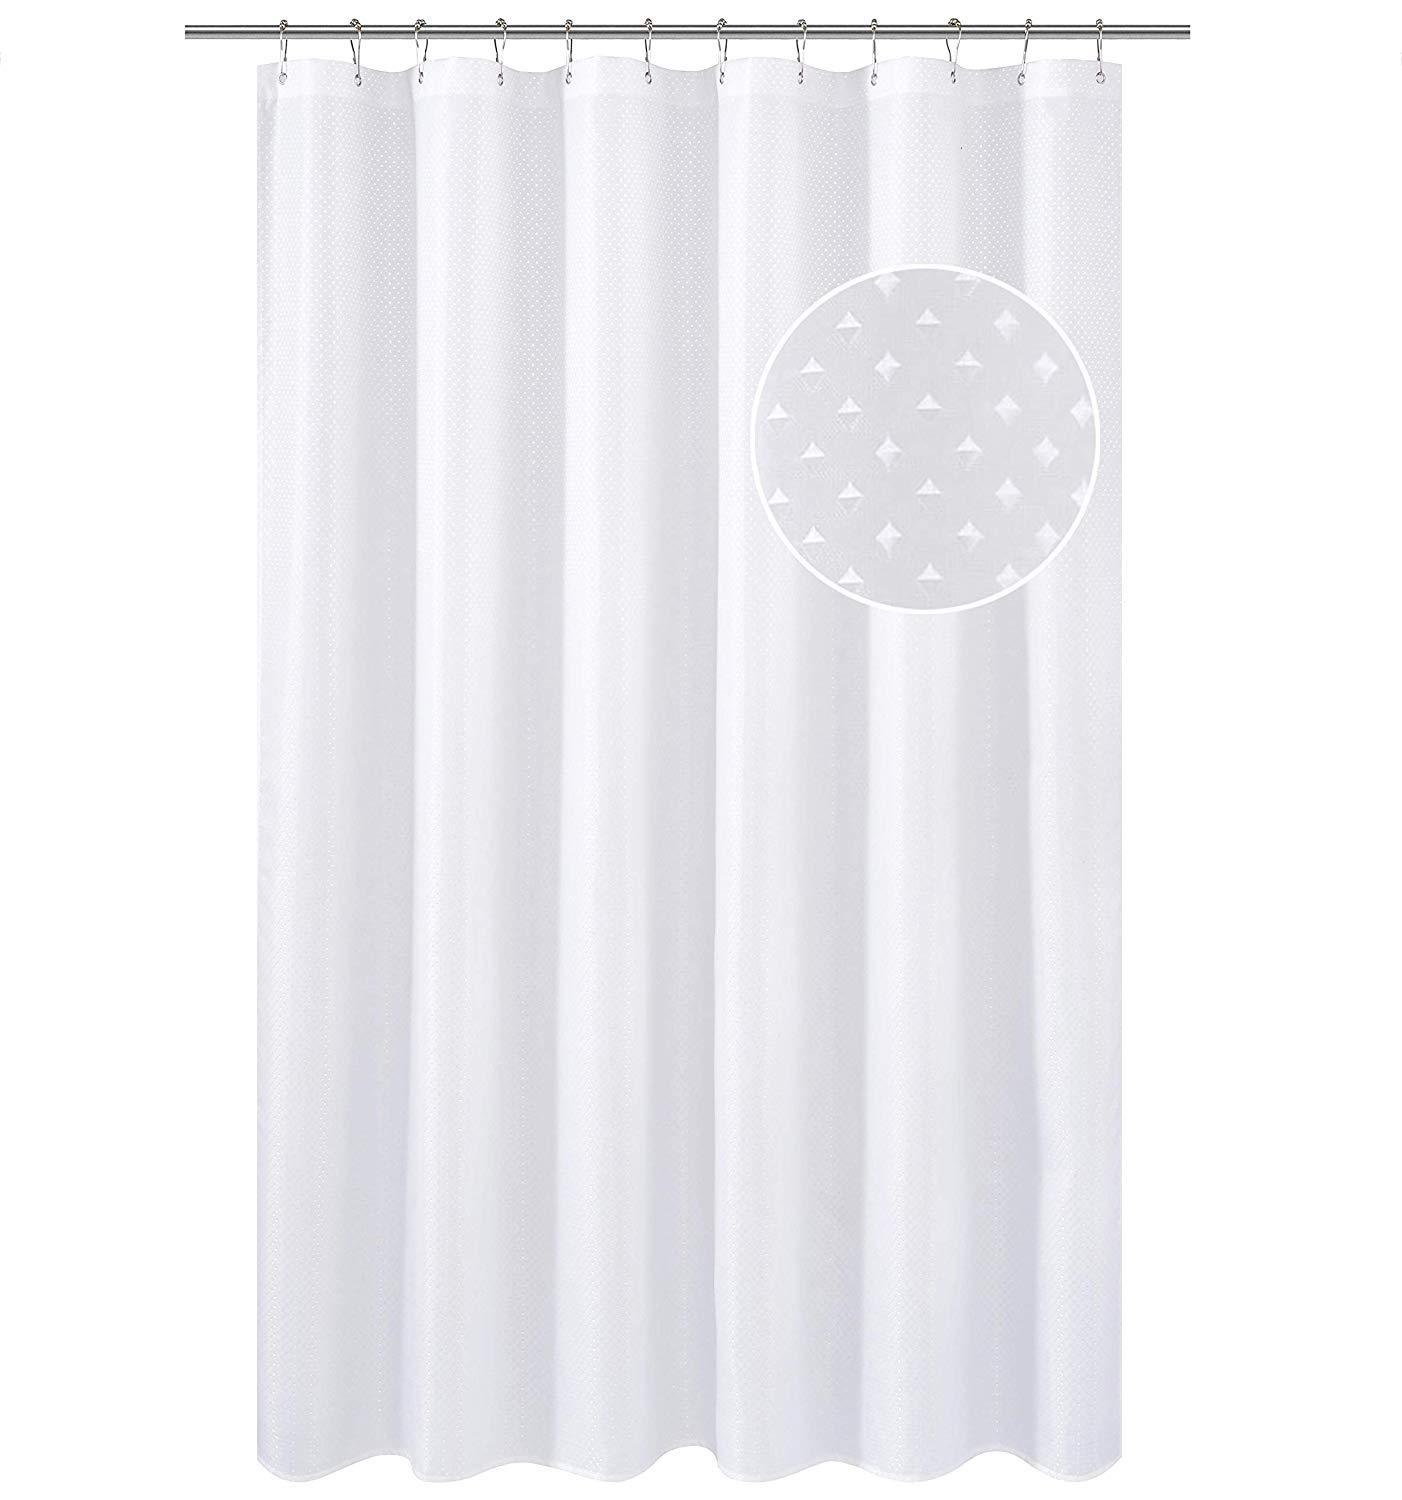 XLong Shower Curtain Liner Marble Bathroom Shower Curtain 72x84 Inch w//5 Magnets